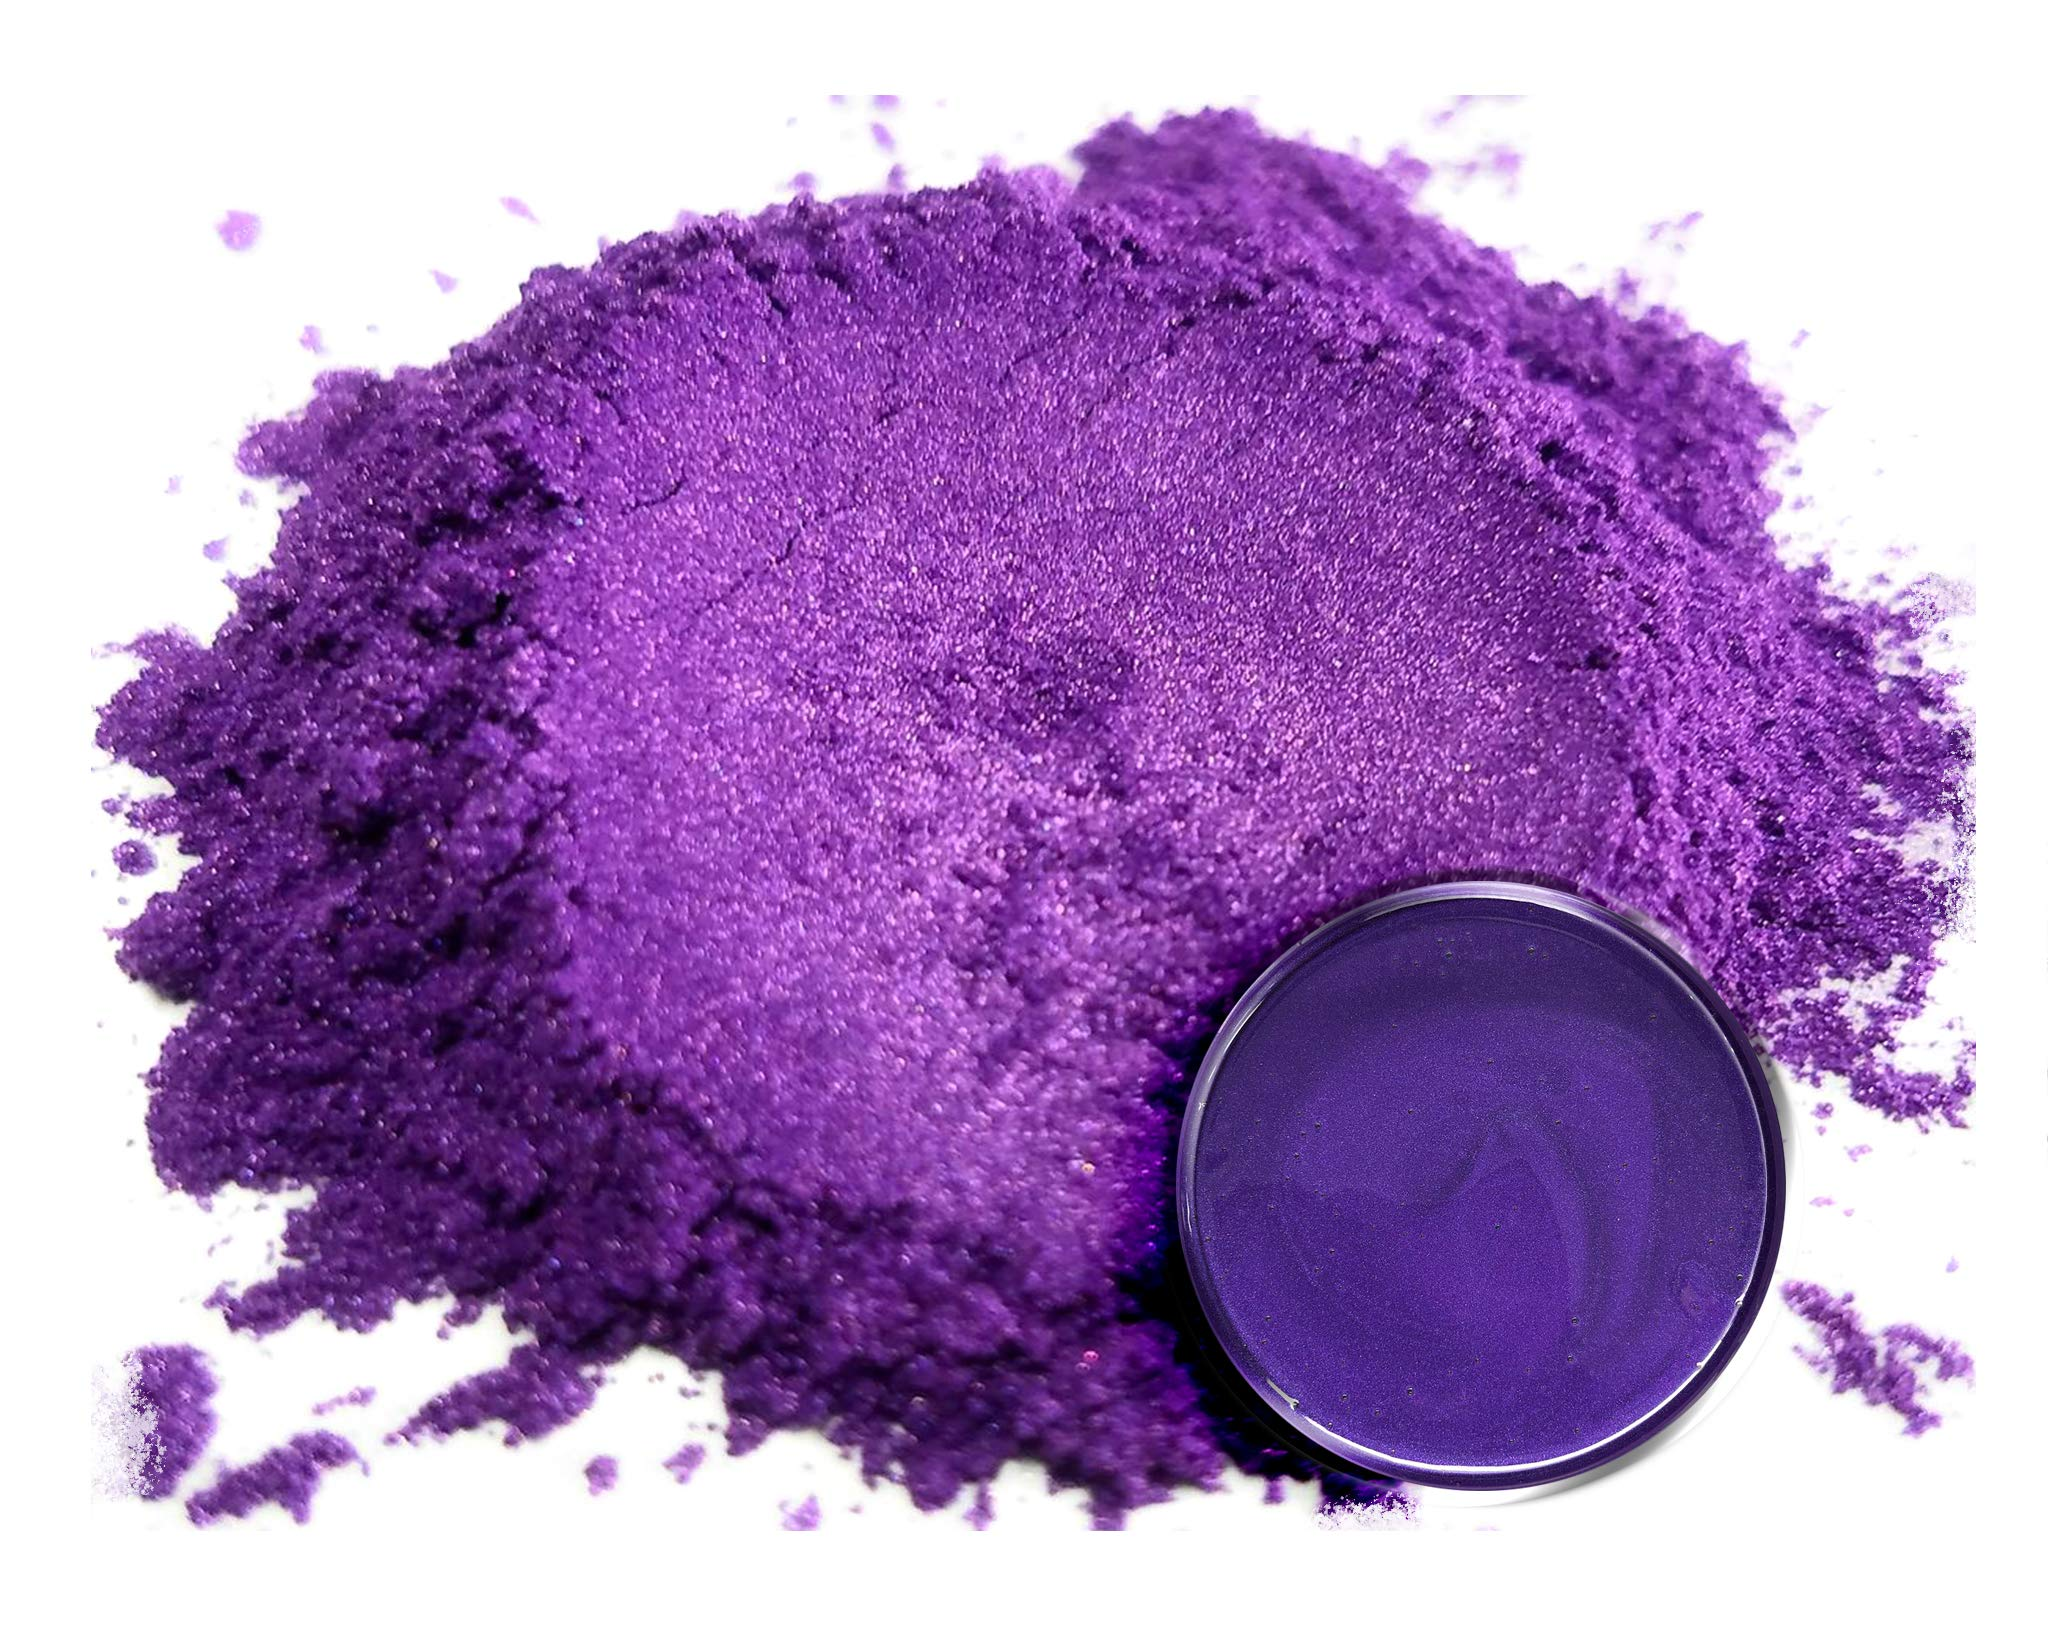 Mica Powder Pigment ''Rainbow Violet'' (50g) Multipurpose DIY Arts and Crafts Additive | Woodworking, Epoxy, Resin, Natural Bath Bombs, Paint, Soap, Nail Polish, Lip Balm by Eye Candy